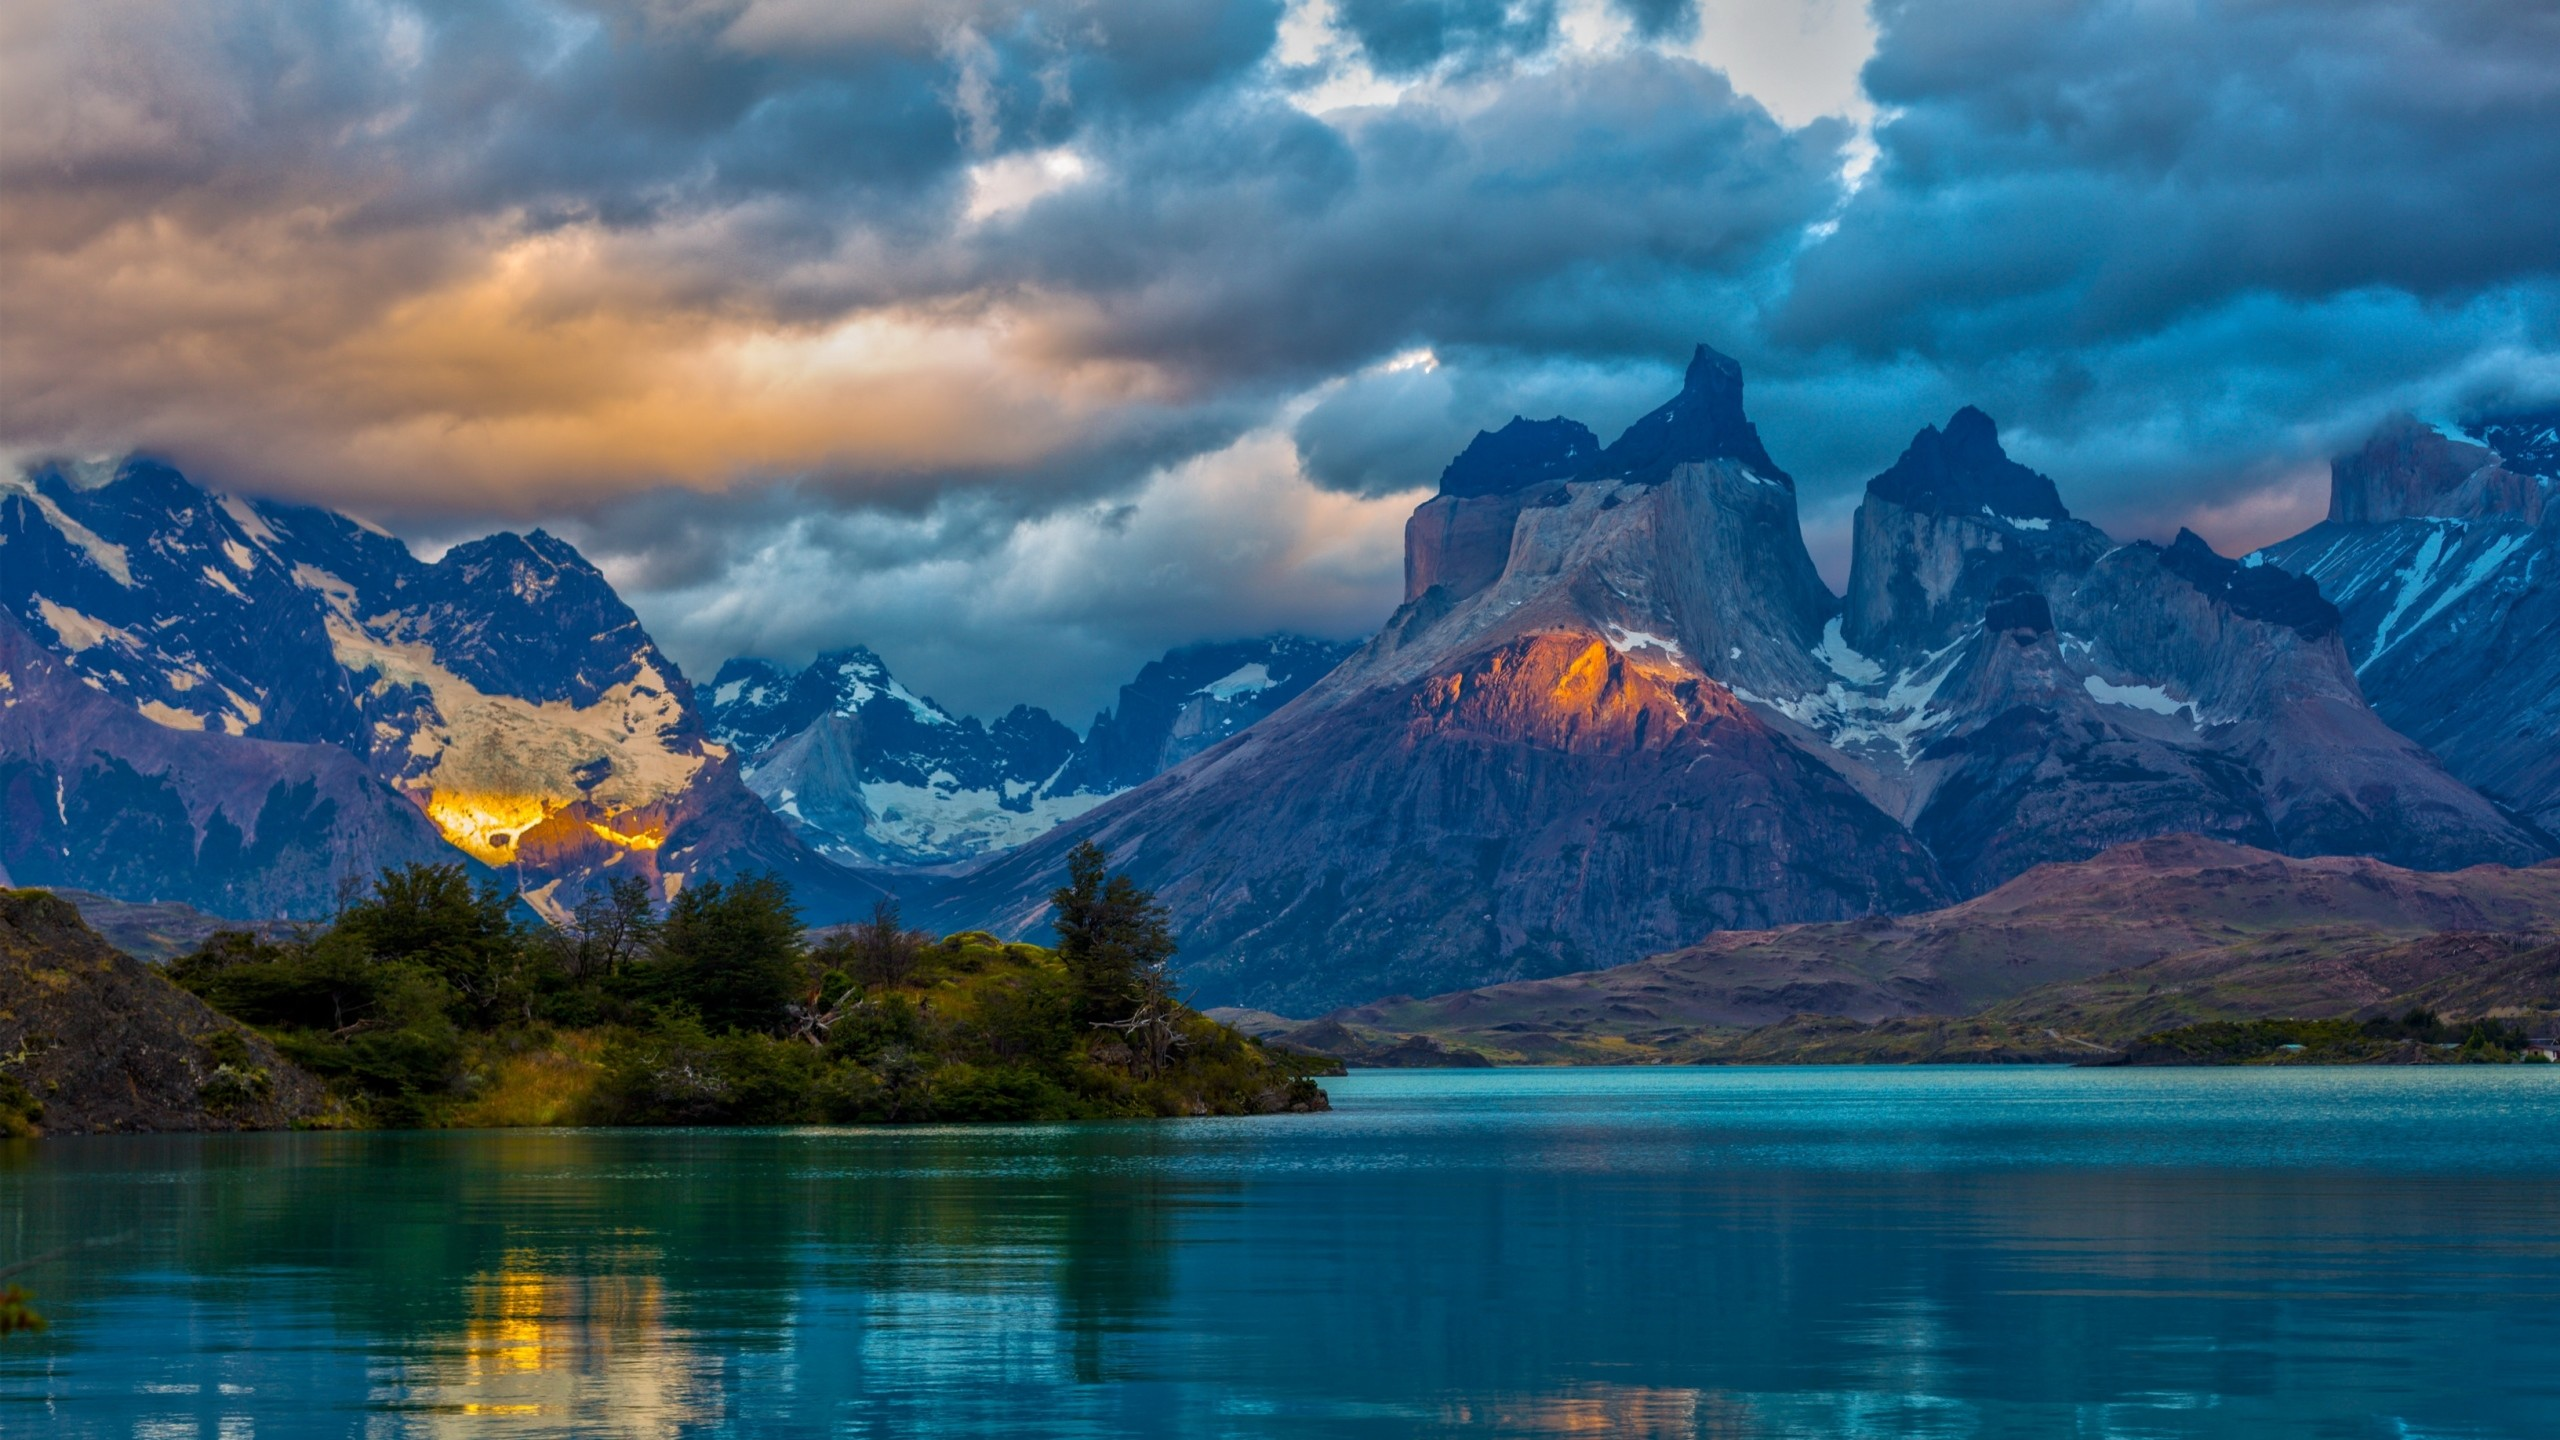 2560x1440  Wallpaper landscape, argentina, mountain, lake, patagonia,  clouds, nature